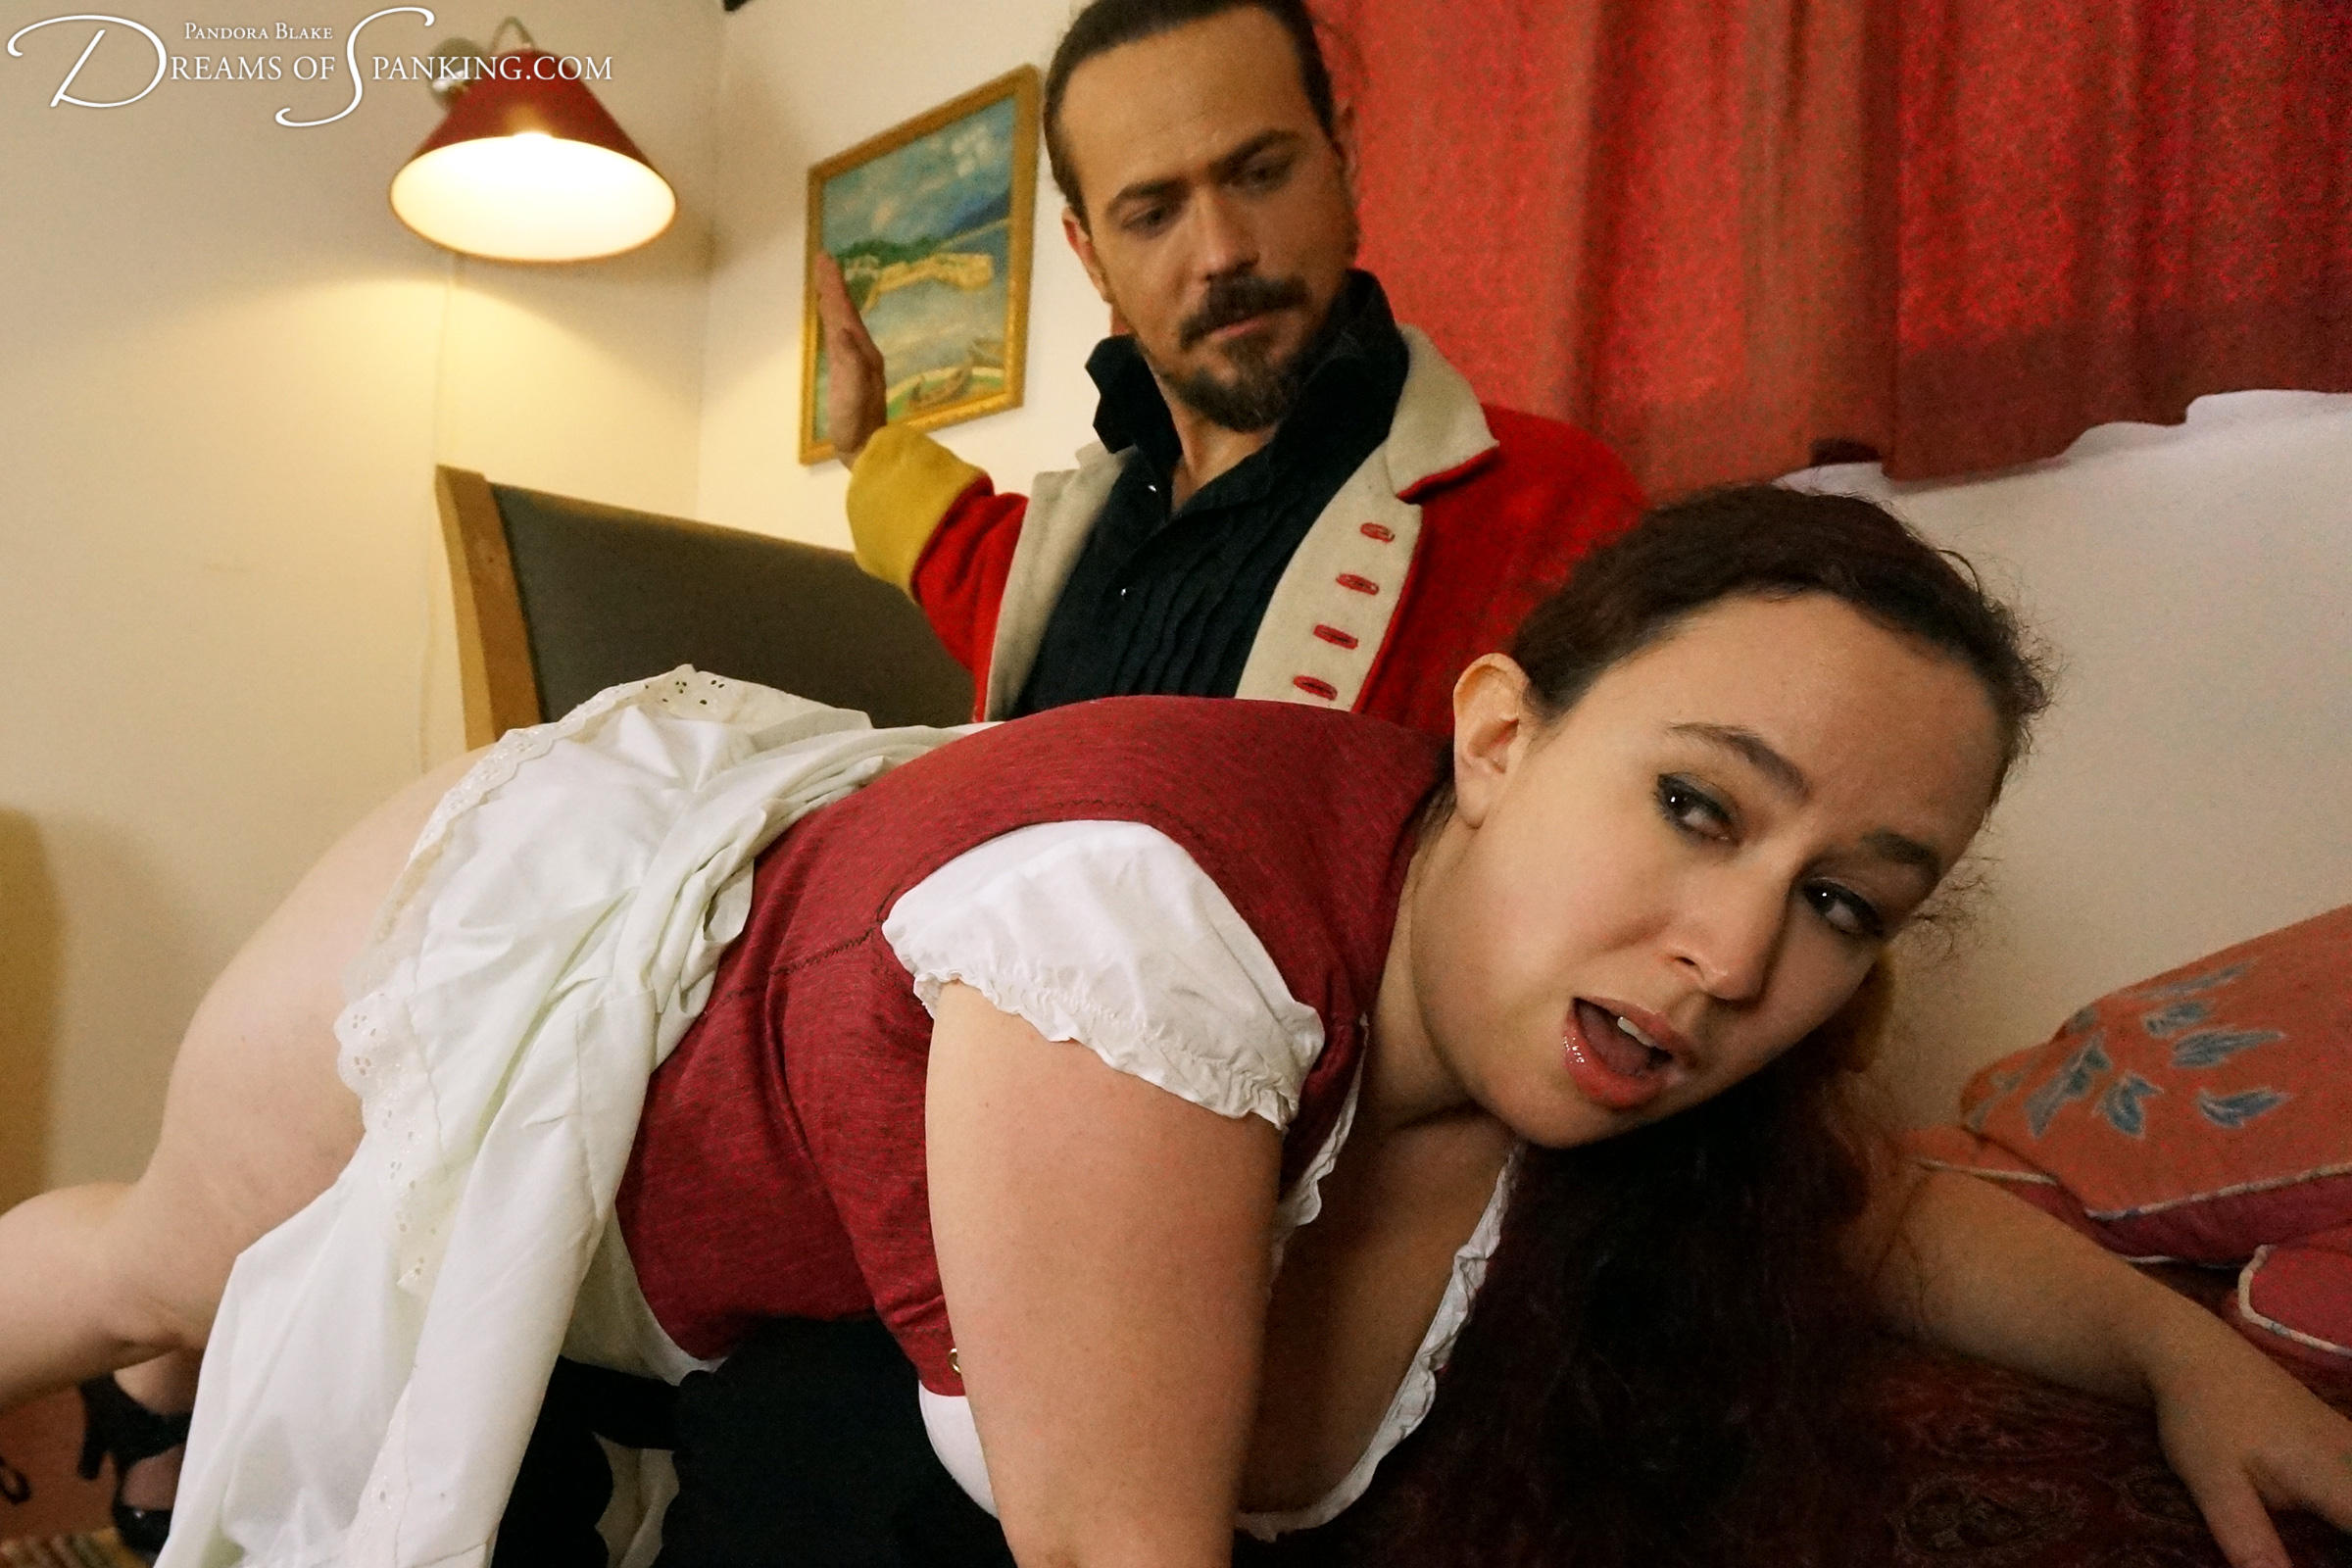 A new wench presents herself to Major Havelock and he puts her through her paces.